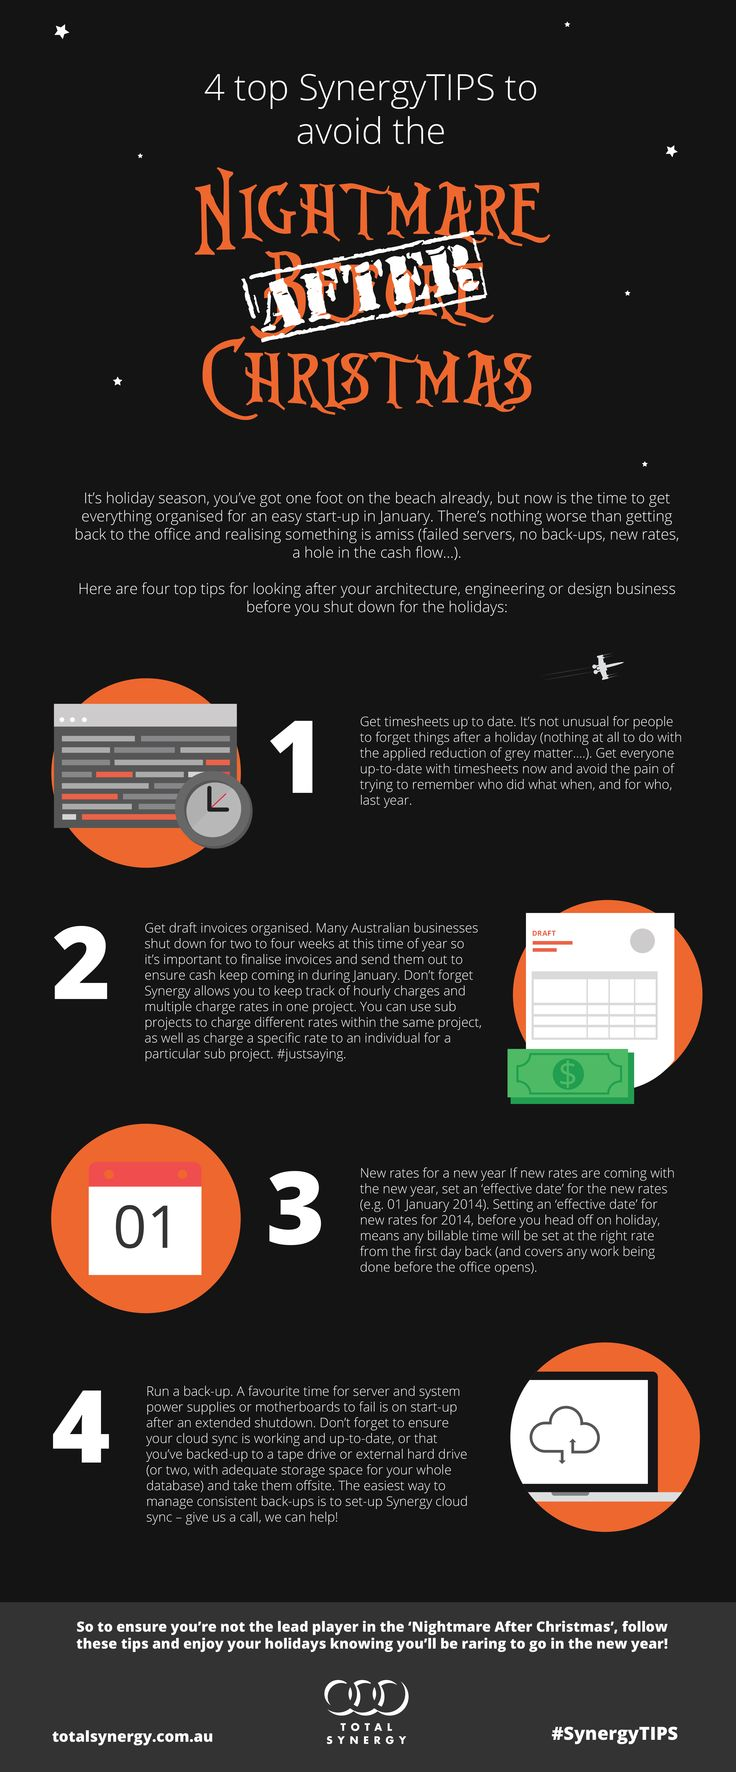 Cool rework of some blog content by my colleague @amaria1989 @totalsynergy  4 top SynergyTIPS to avoid the nightmare after Christmas - this graphic dates back to  our #SynergyTips in mid December 2013.